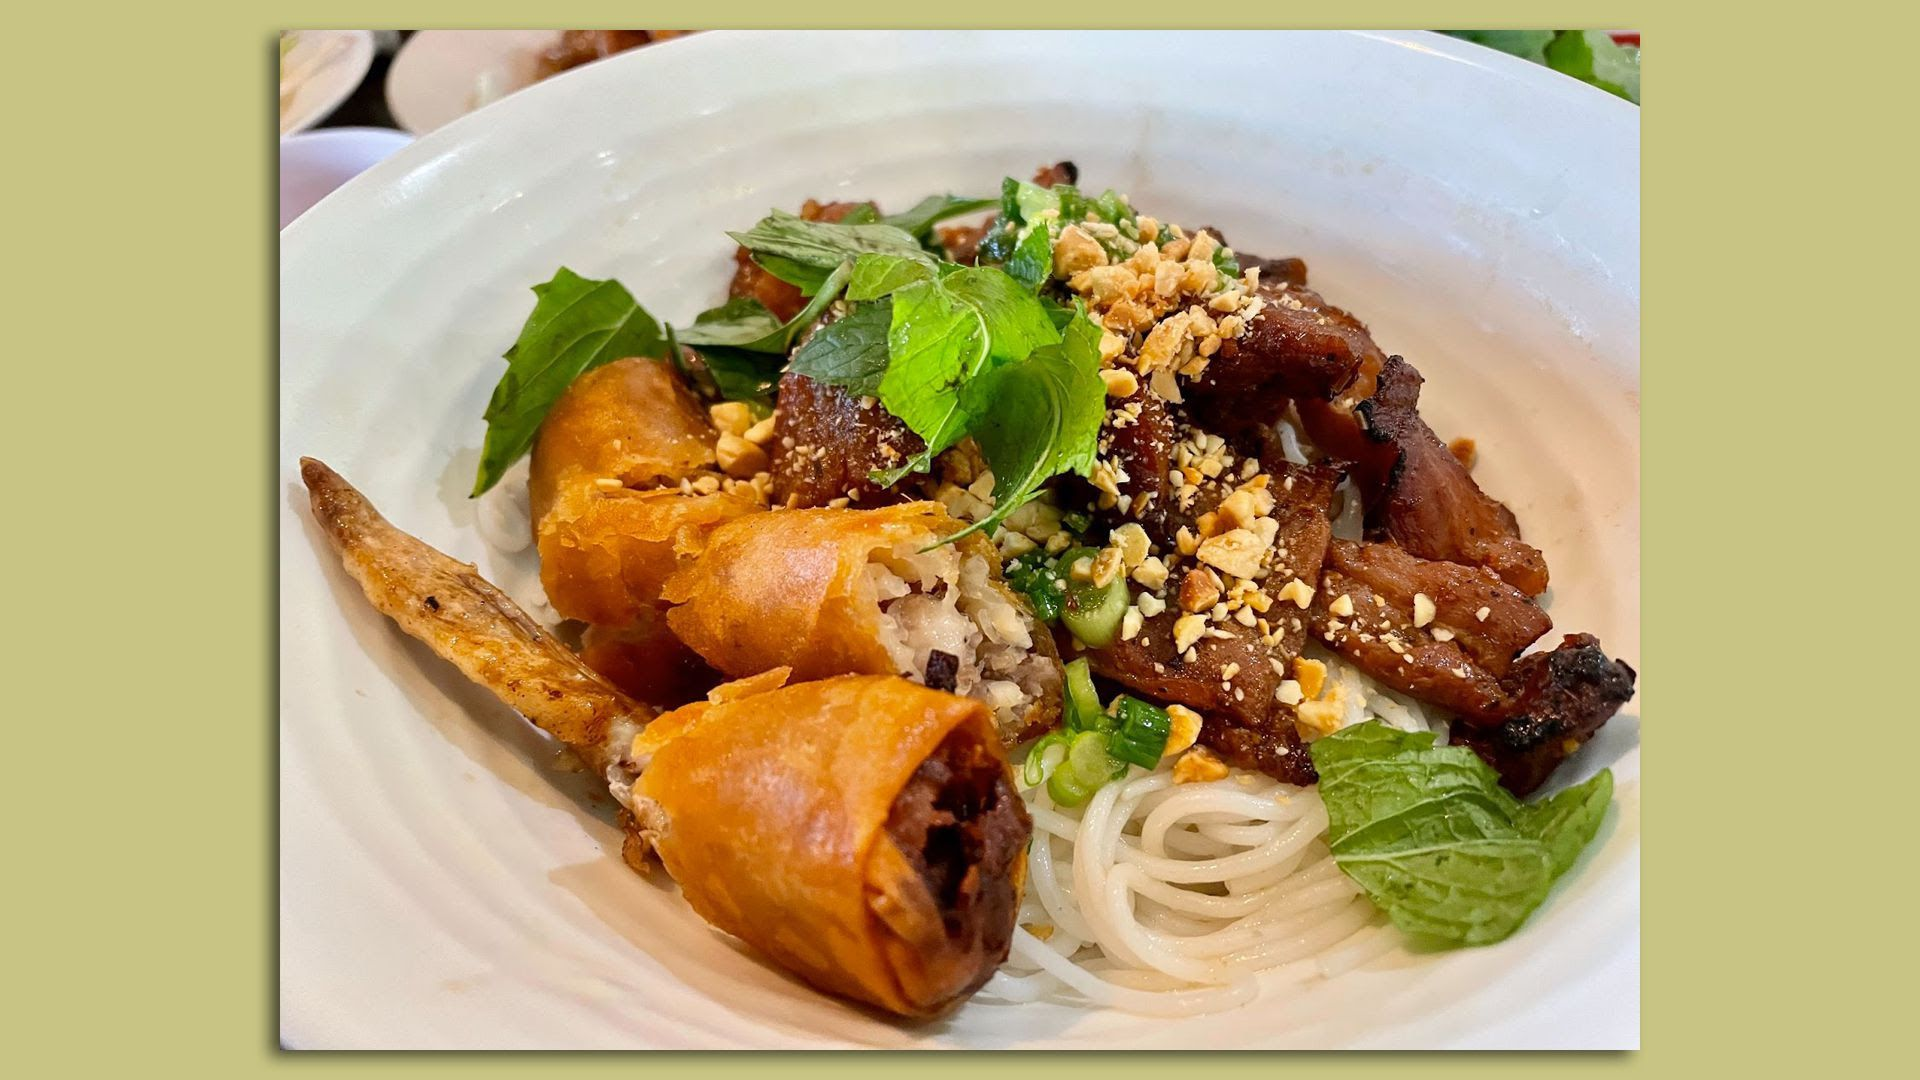 A plate of Thit nuong (pork) vermicelli at Pho All Seasons in Des Moines.